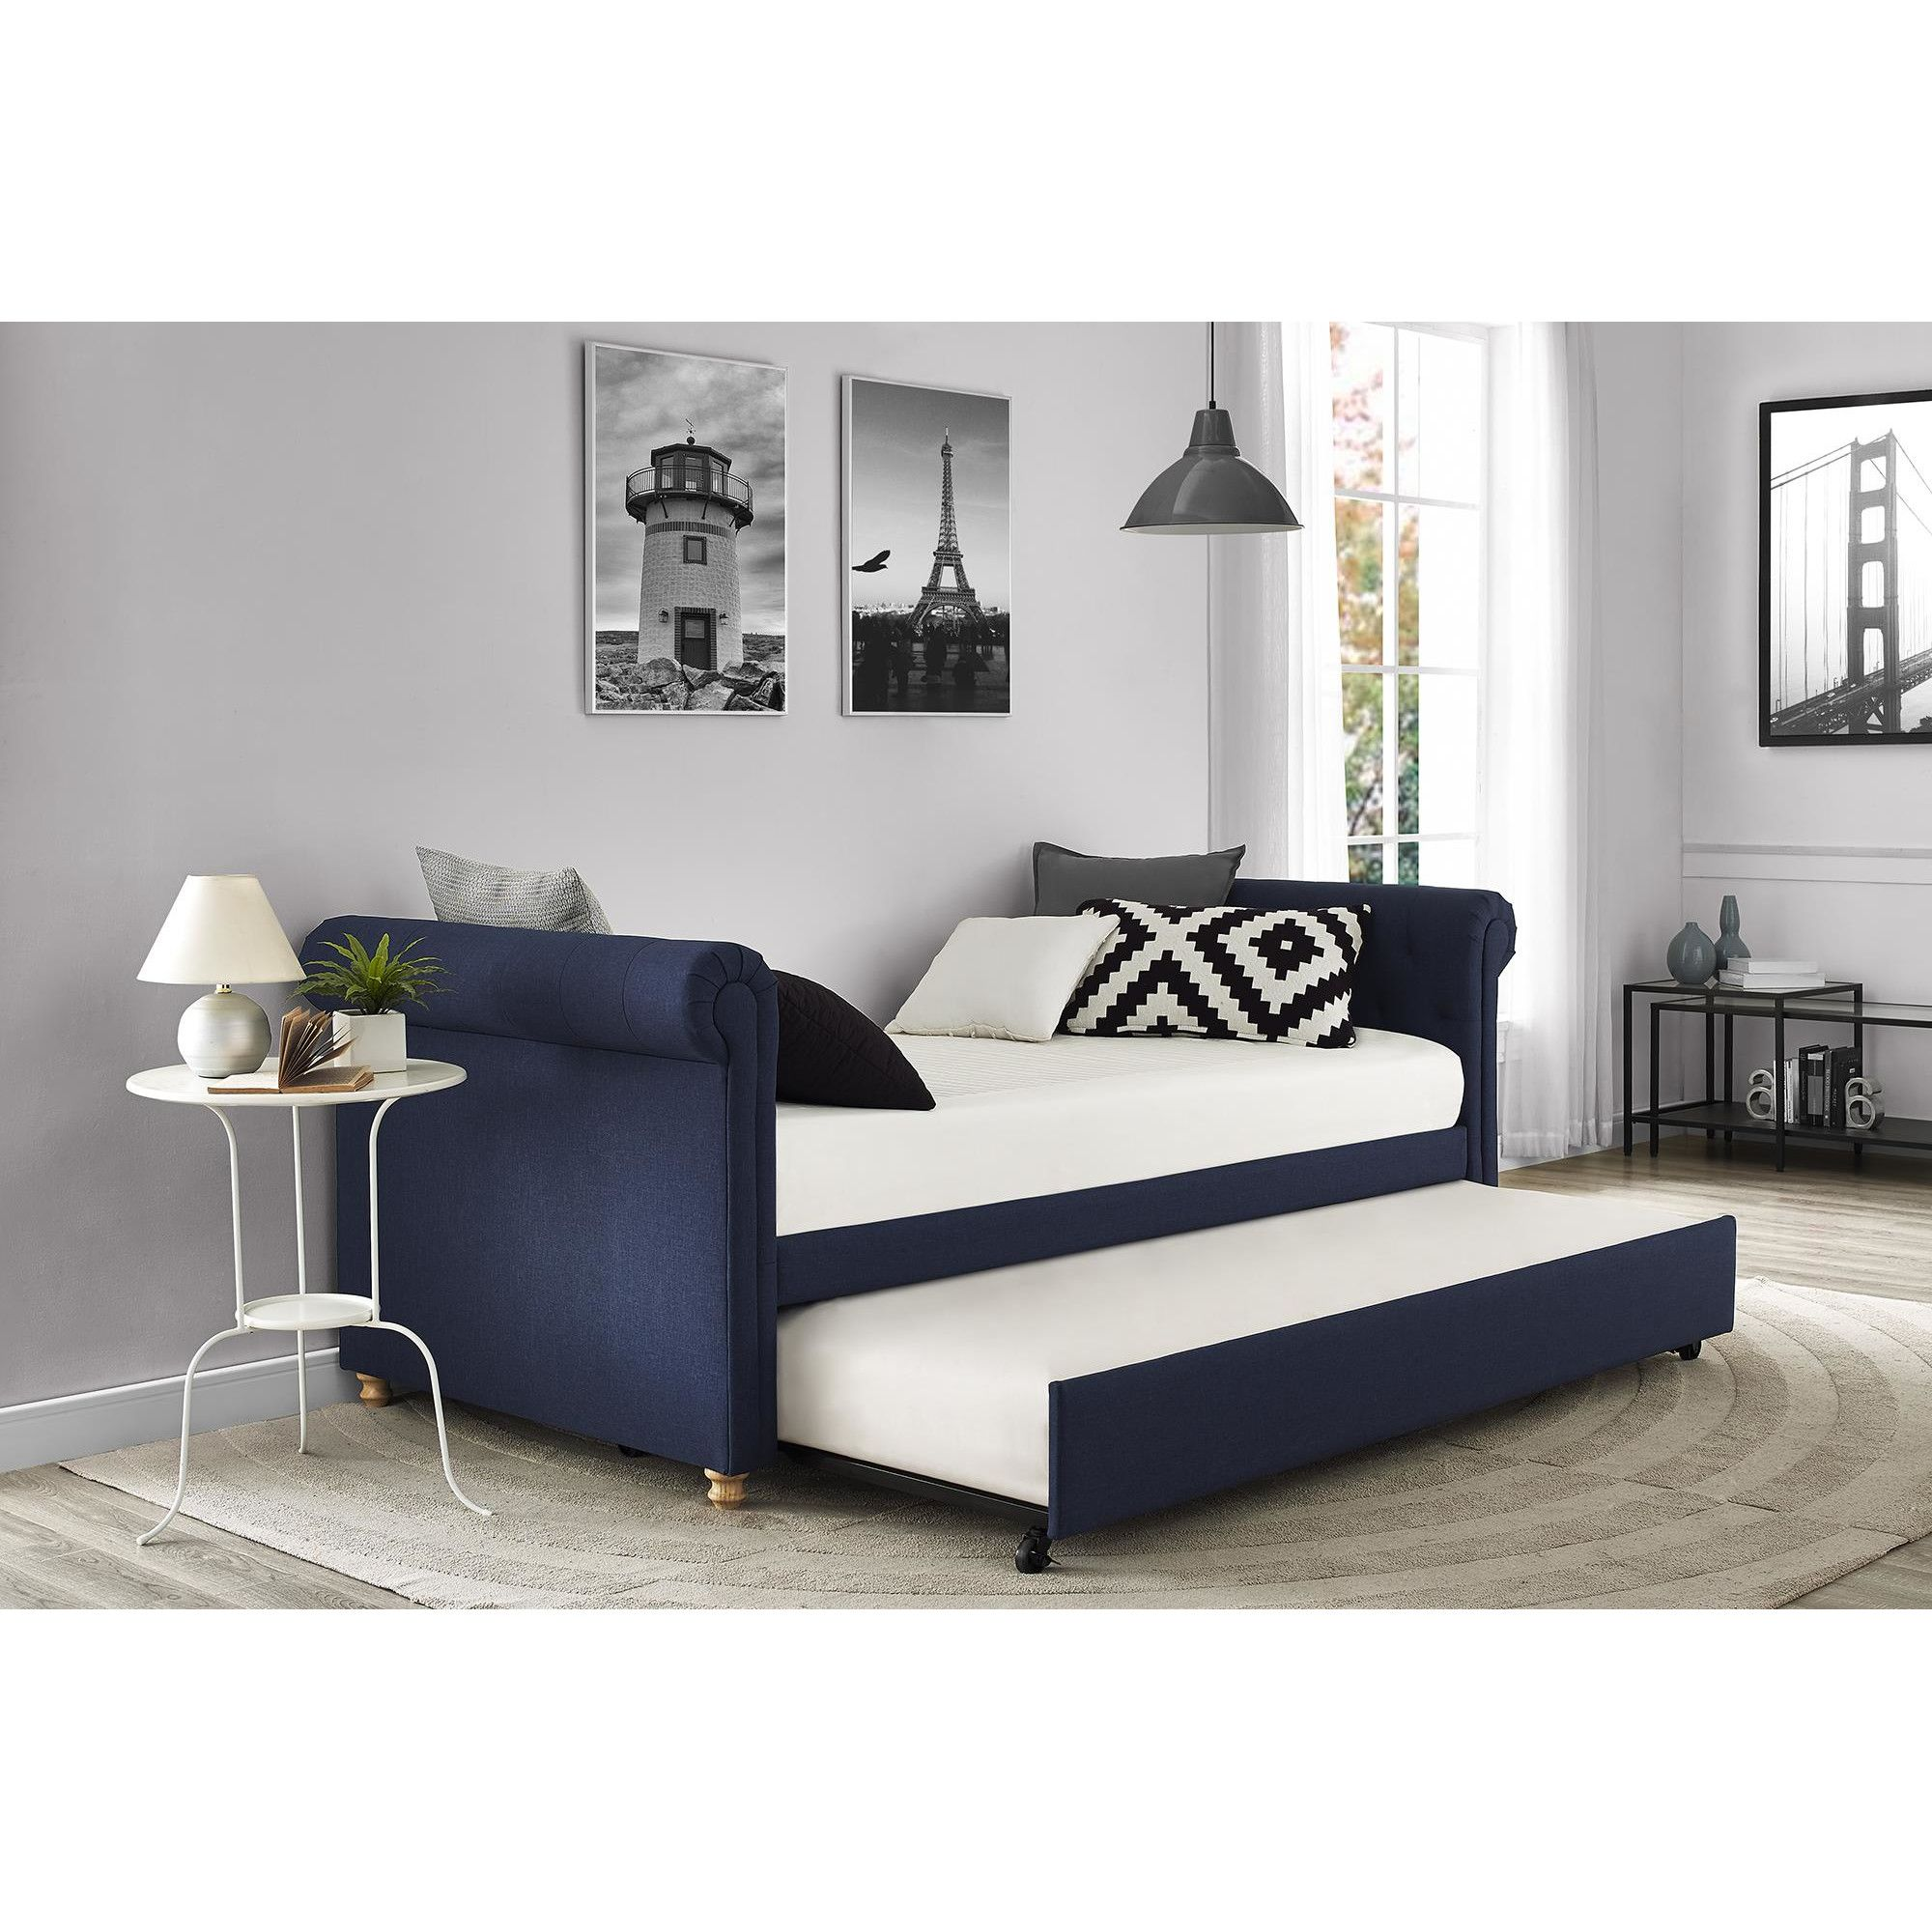 Shop Wayfair For Daybeds To Match Every Style And Budget